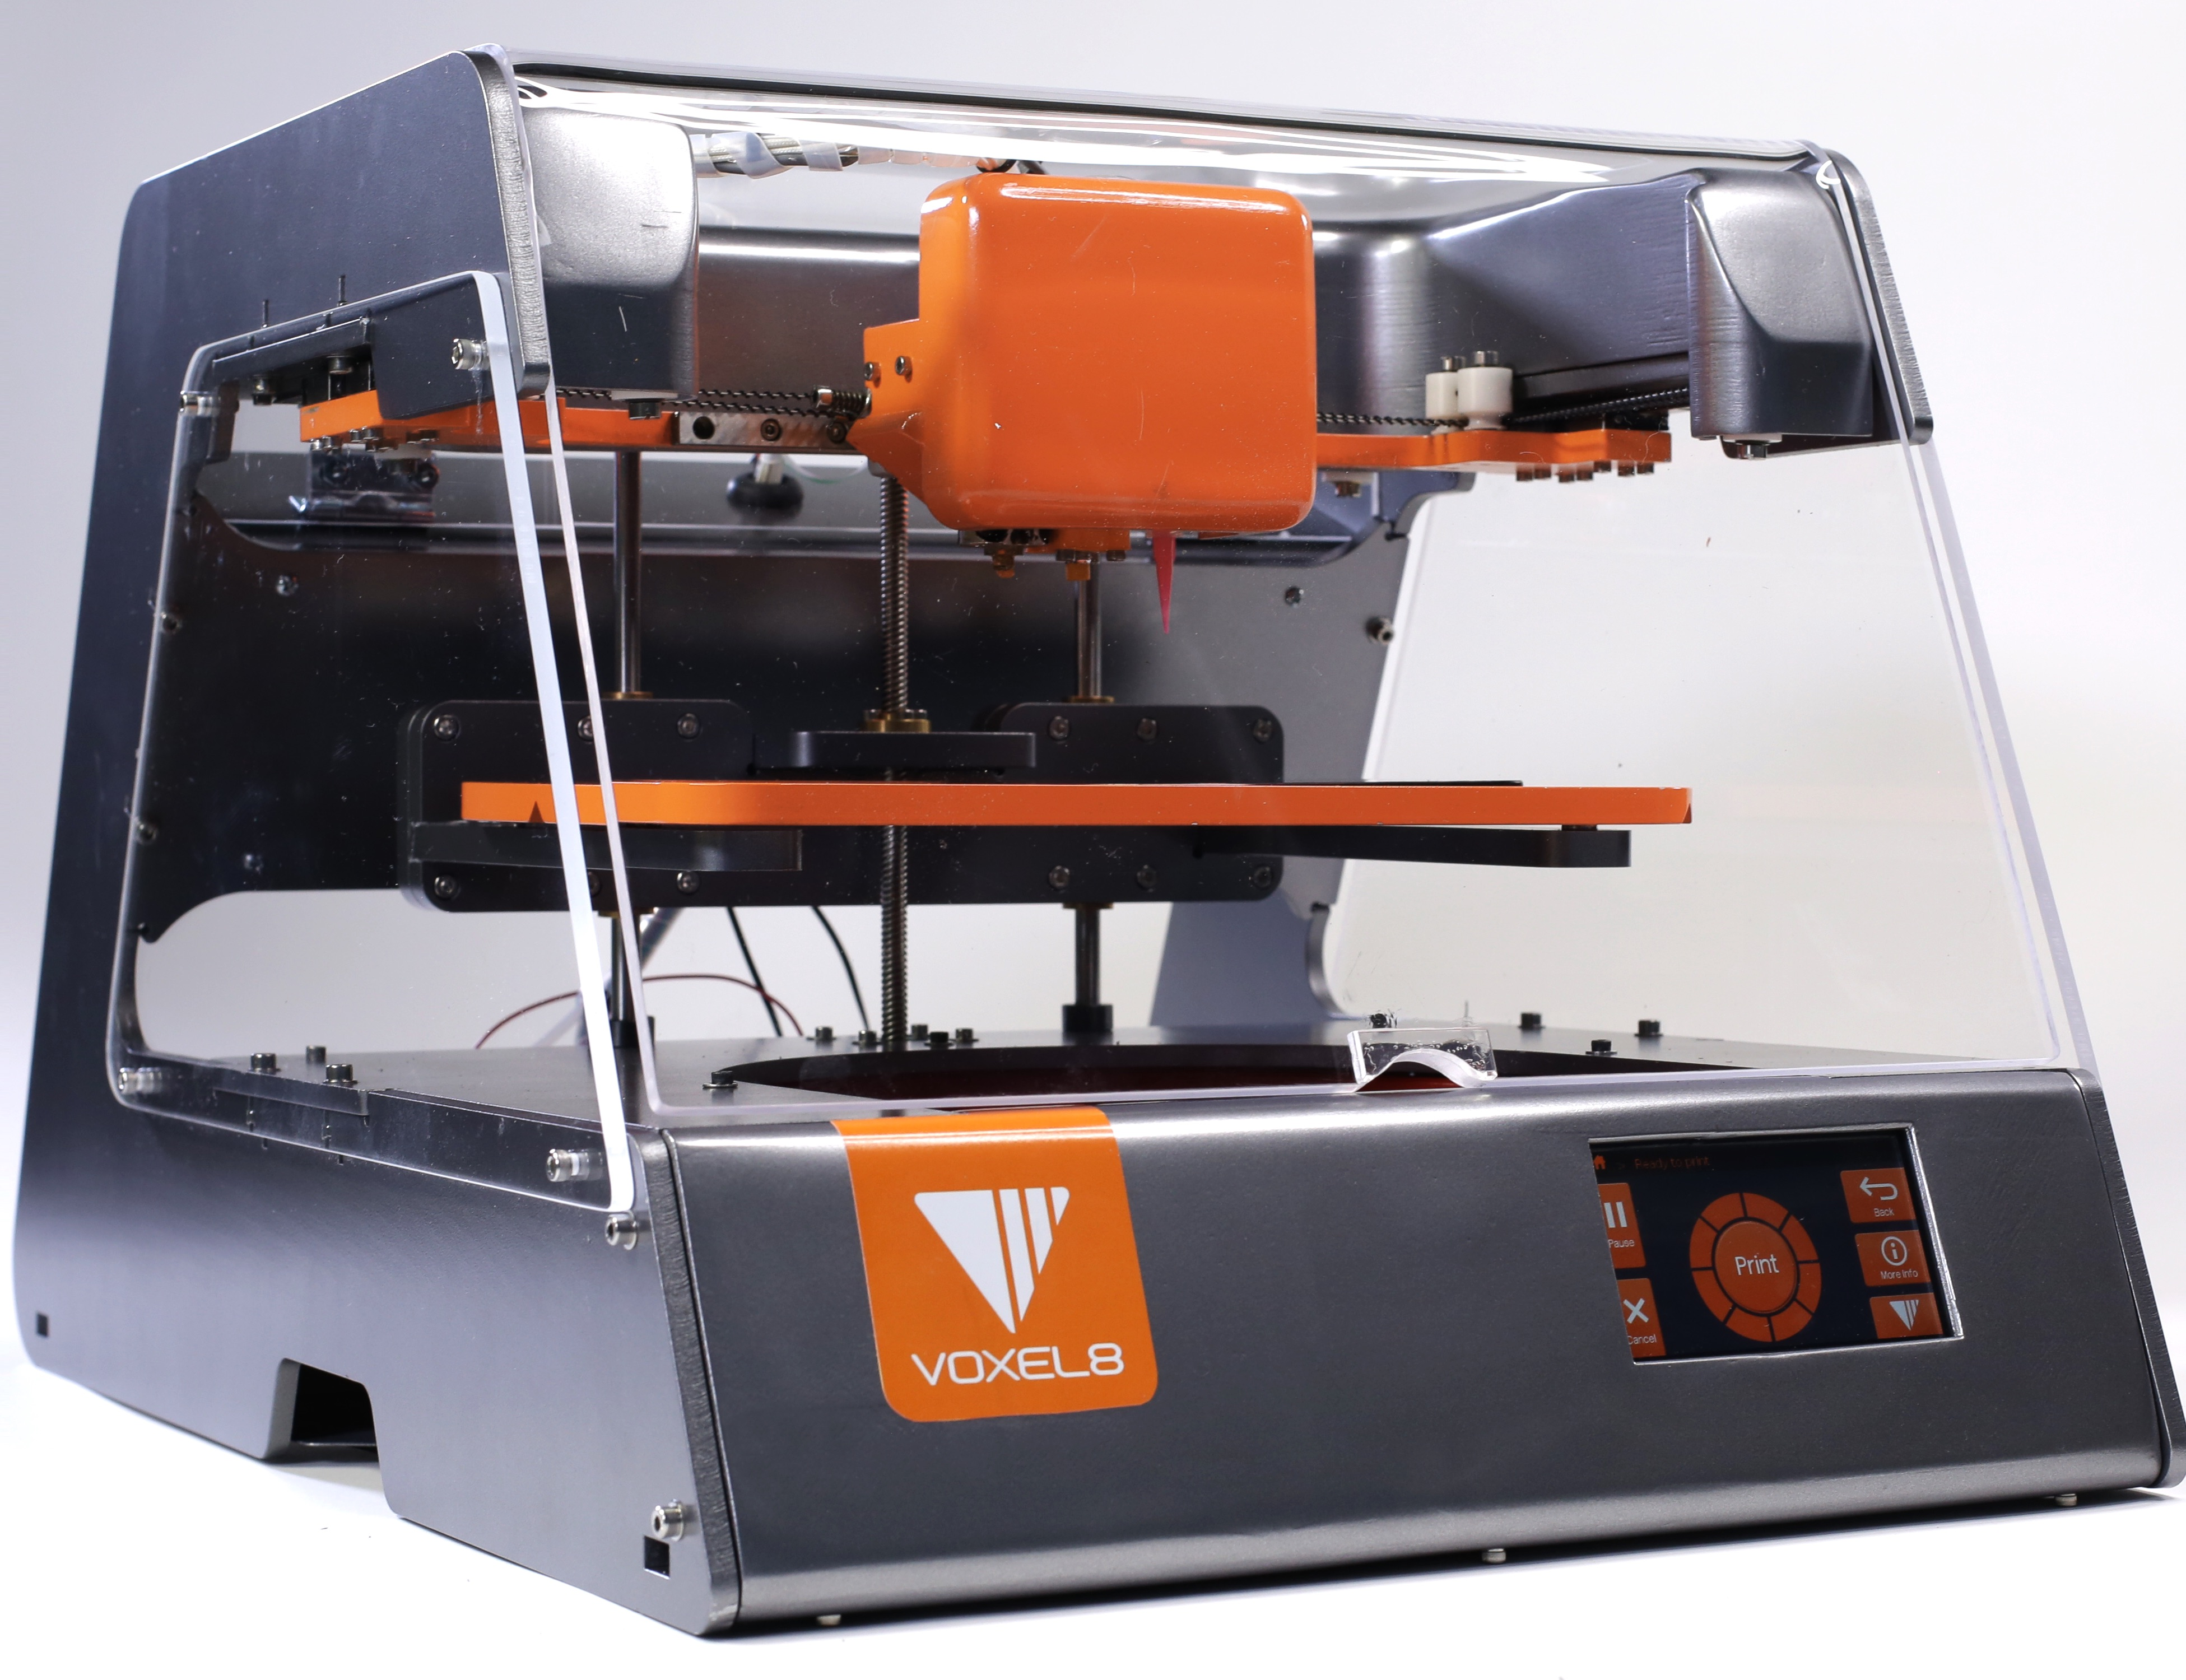 Xconomy: Harvard Spin-off Voxel8 Takes 3D Printing Into Electronics